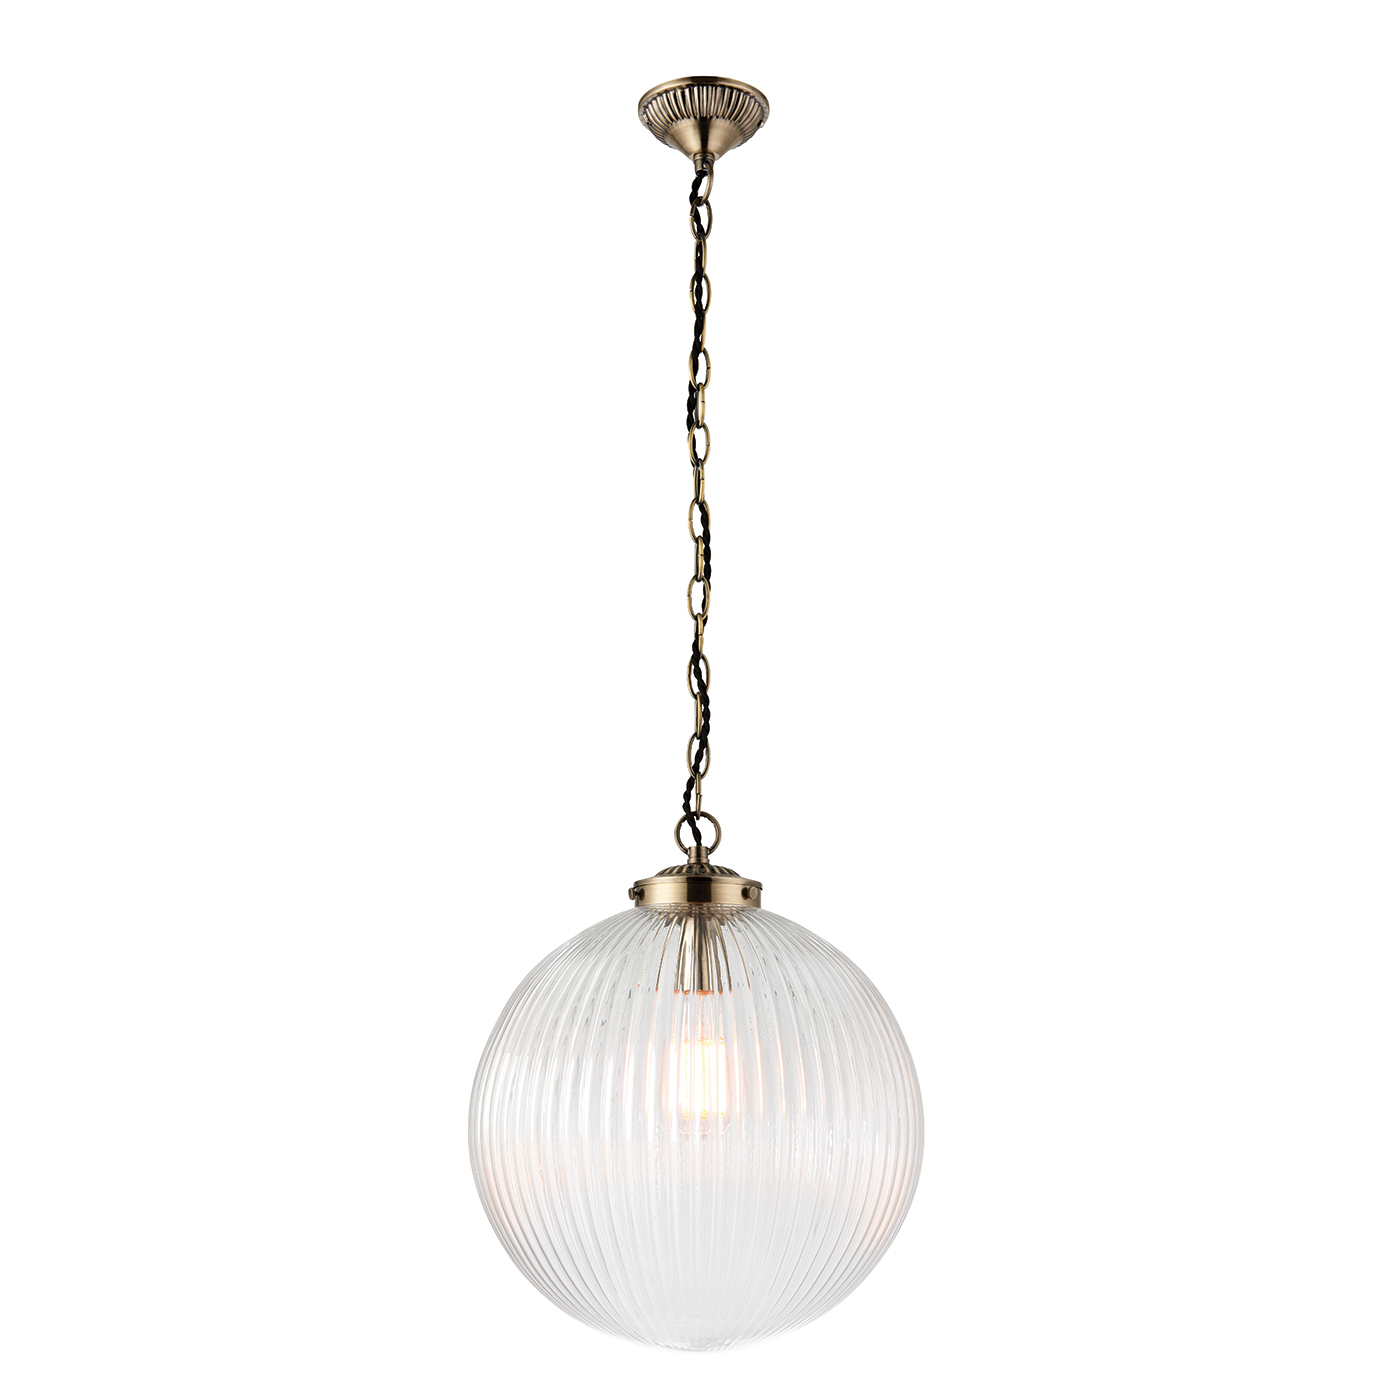 Endon Brydon pendant 1x 40W Clear ribbed glass & antique brass finish Thumbnail 1